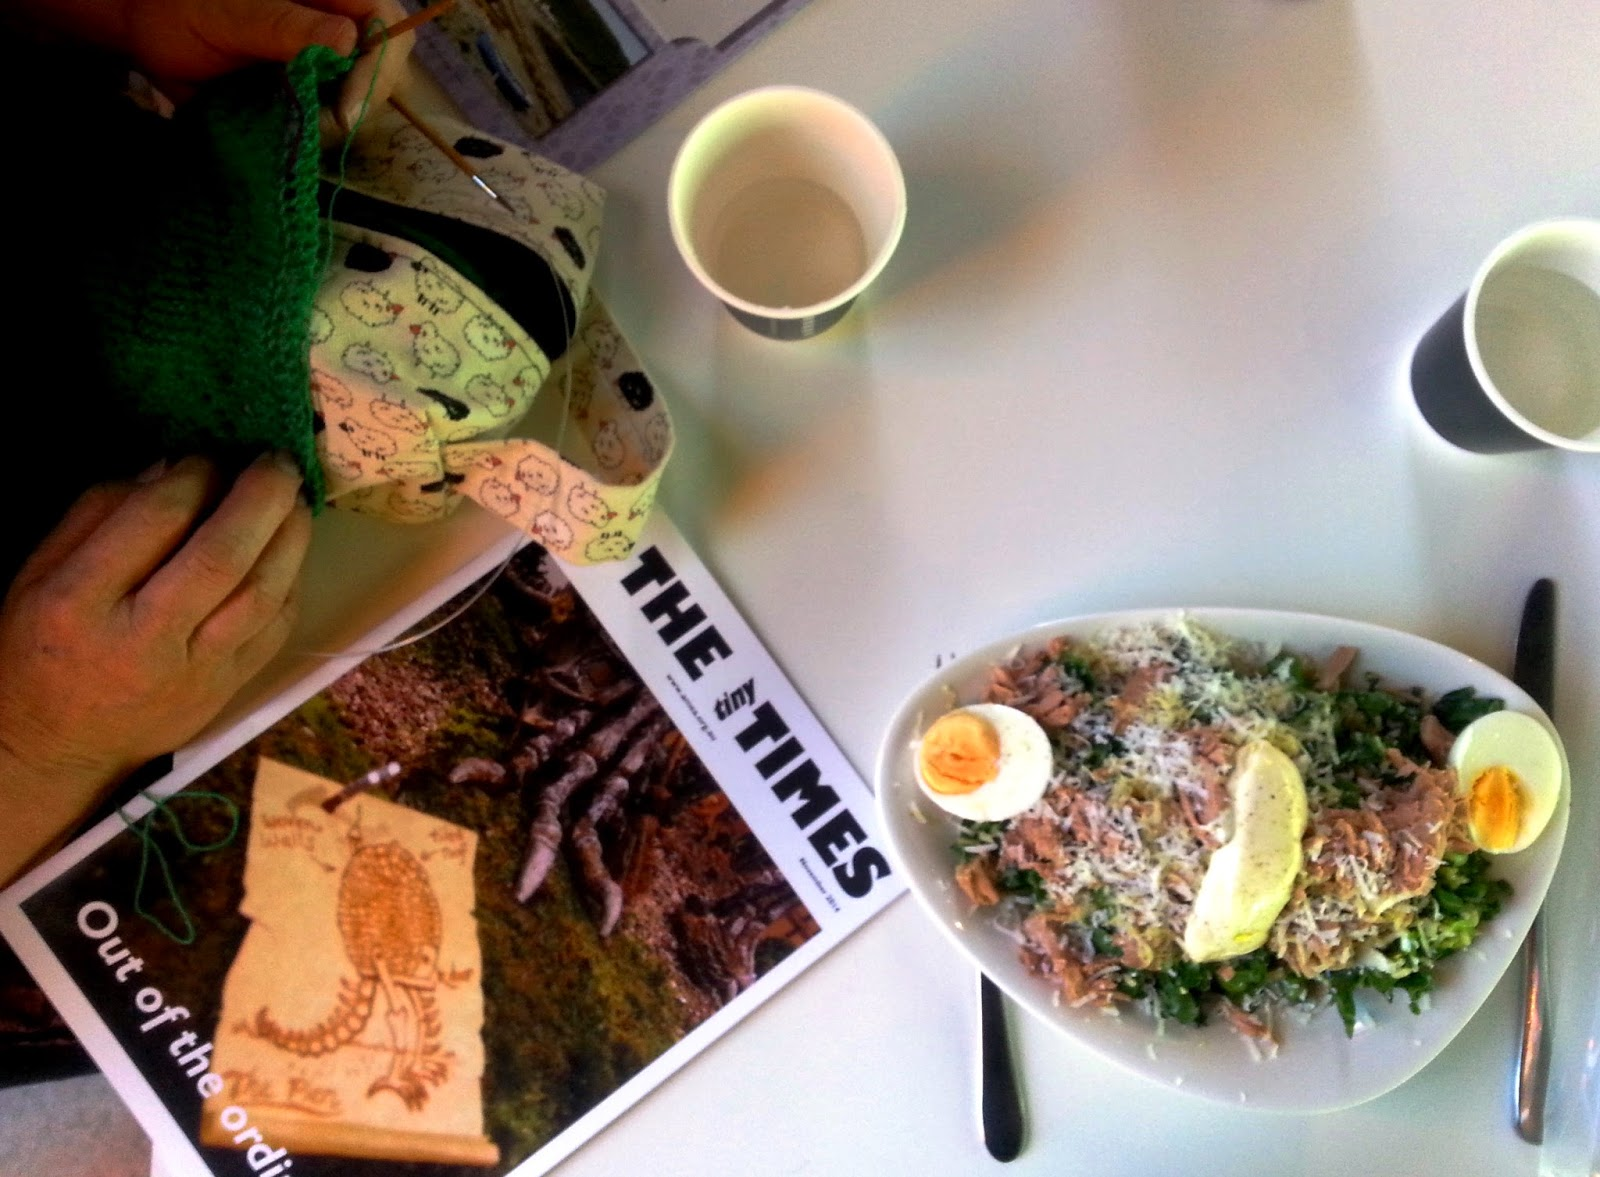 Some knitting, a copy of The tiny Tomes and a tuna nicoise salad on a cafe table.